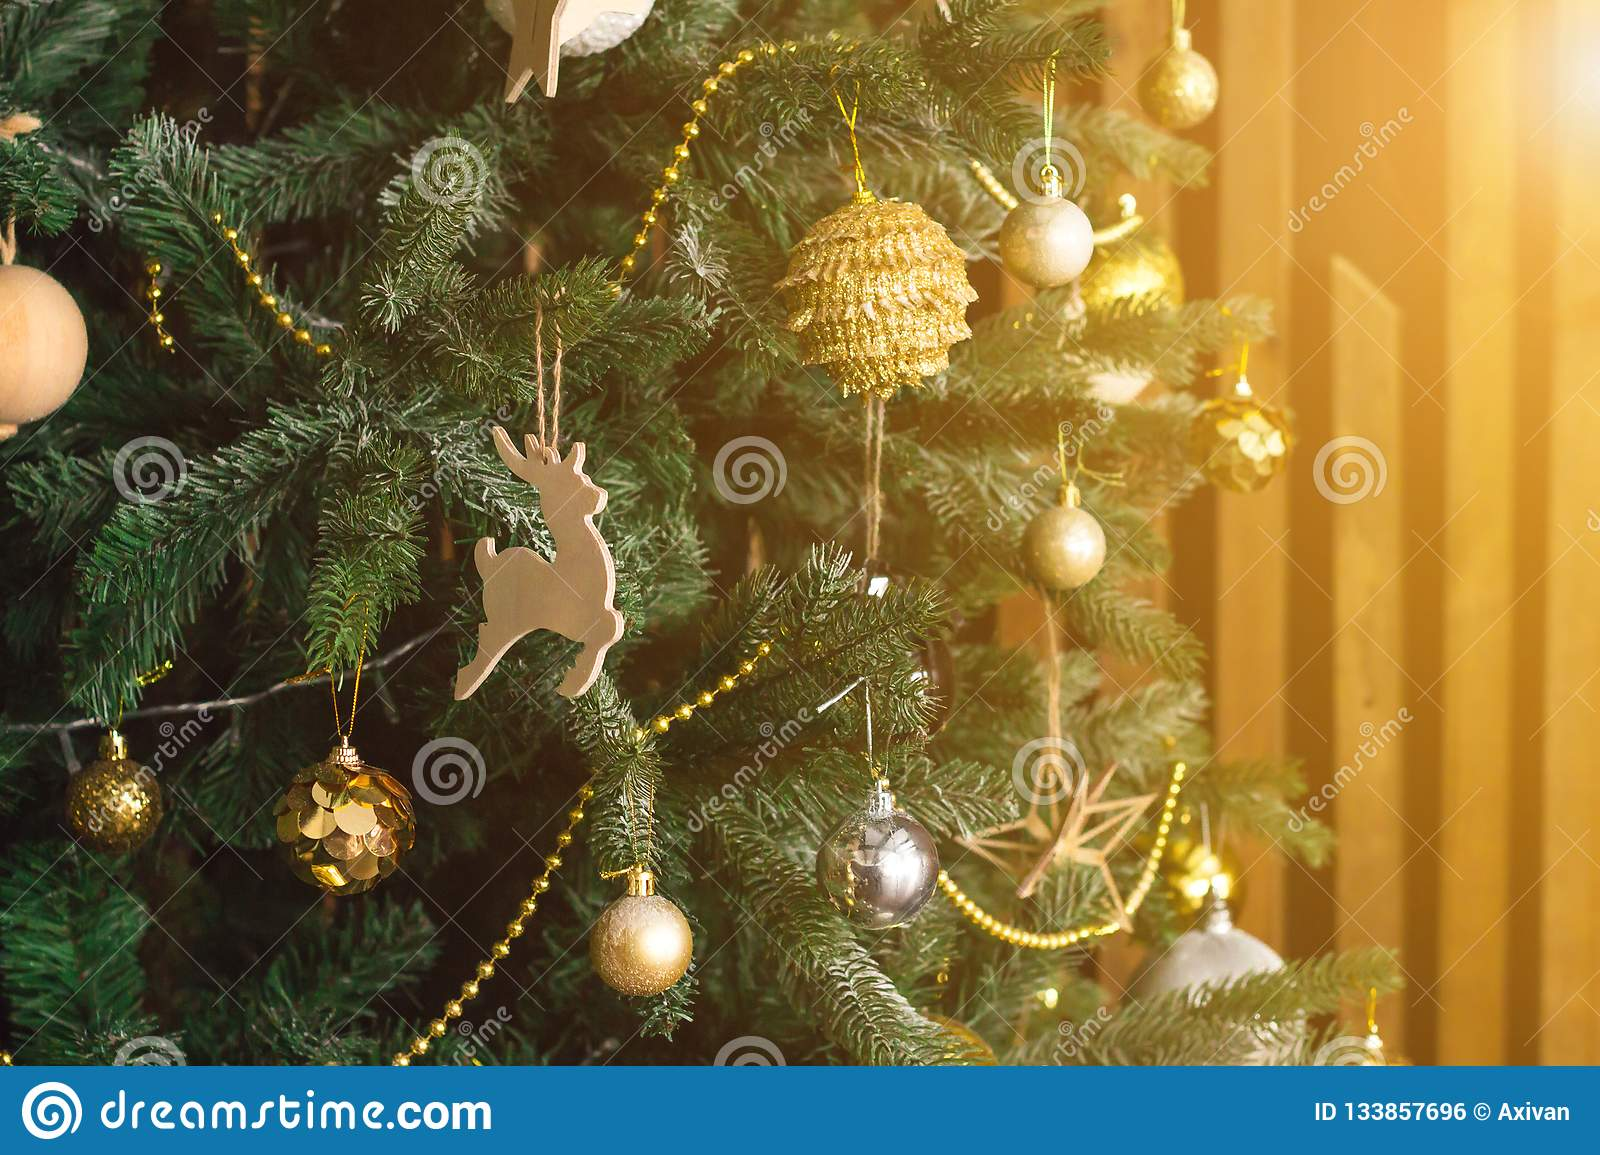 Toys On The Christmas Tree Golden Balls Deer Other Decorations New Year Theme Concept Sun Shining Orange Toned Stock Photo Image Of Winter Ornament 133857696